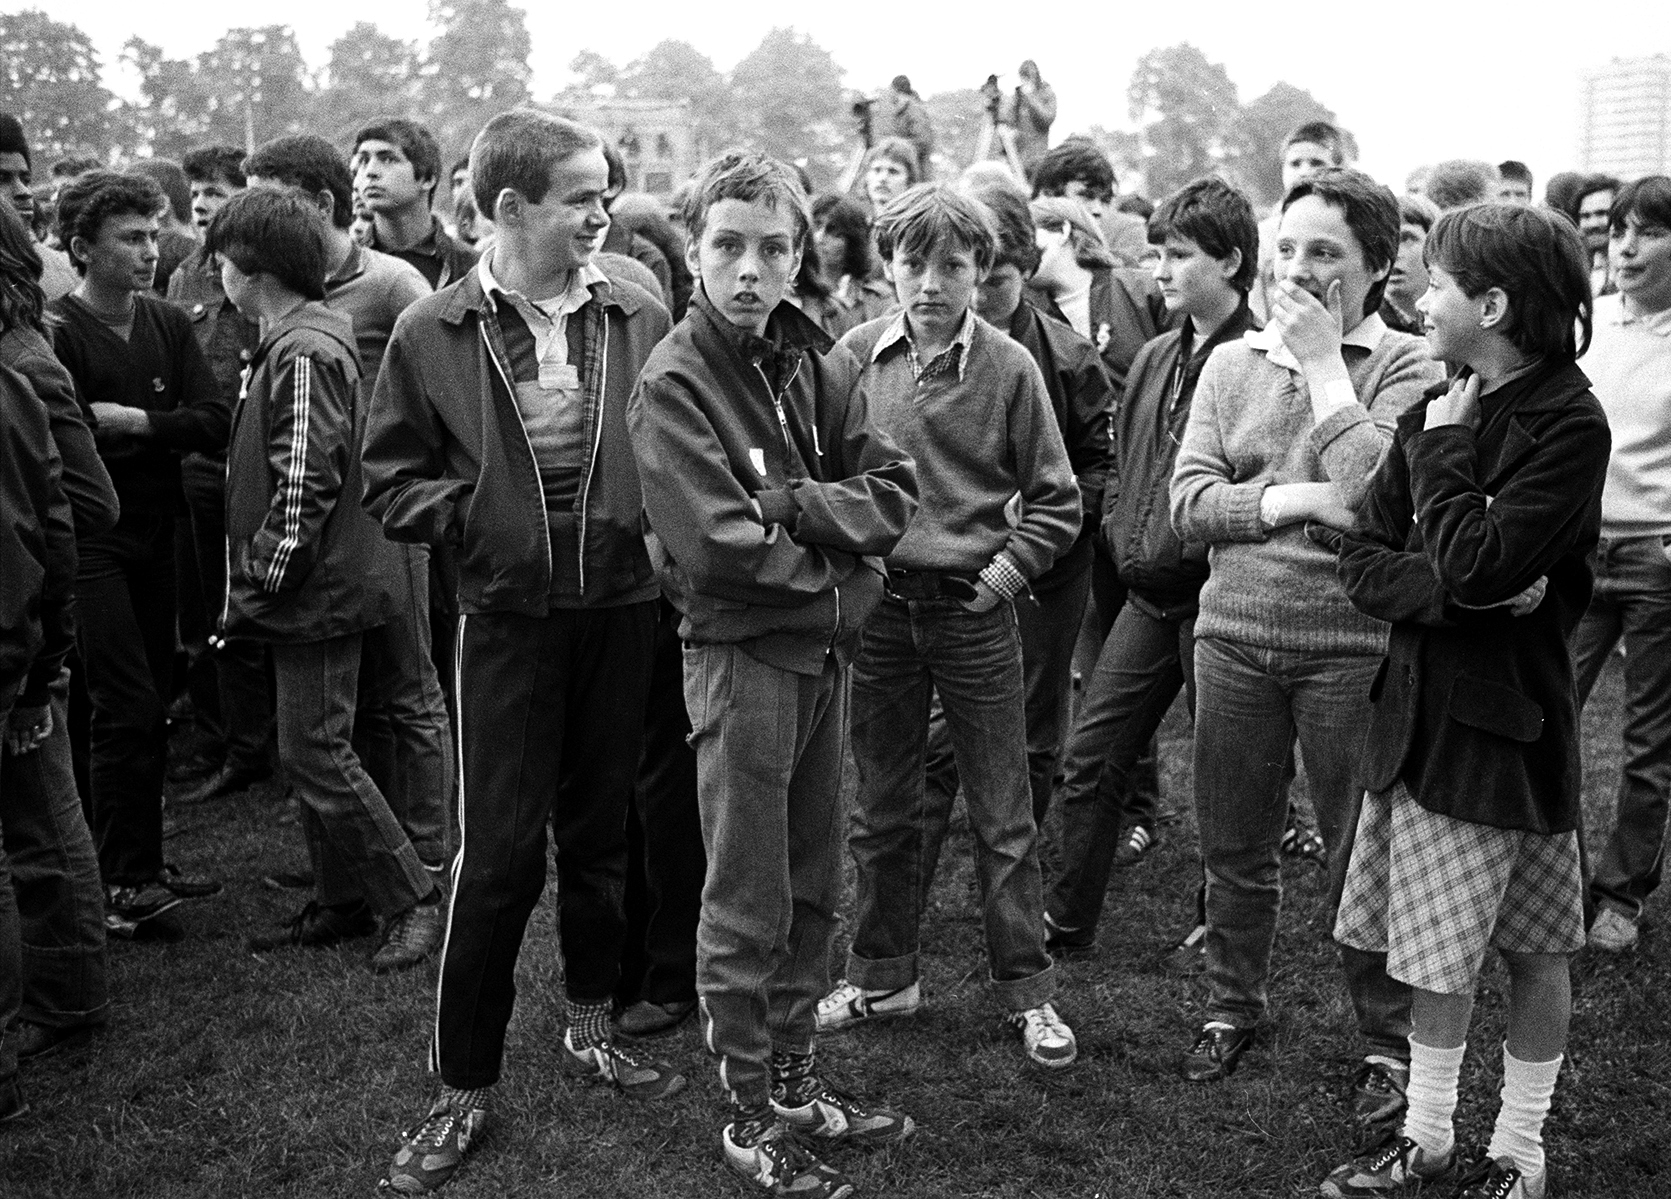 Young mods at a Jam show by Janette Beckman courtesy of Fahey/Klein